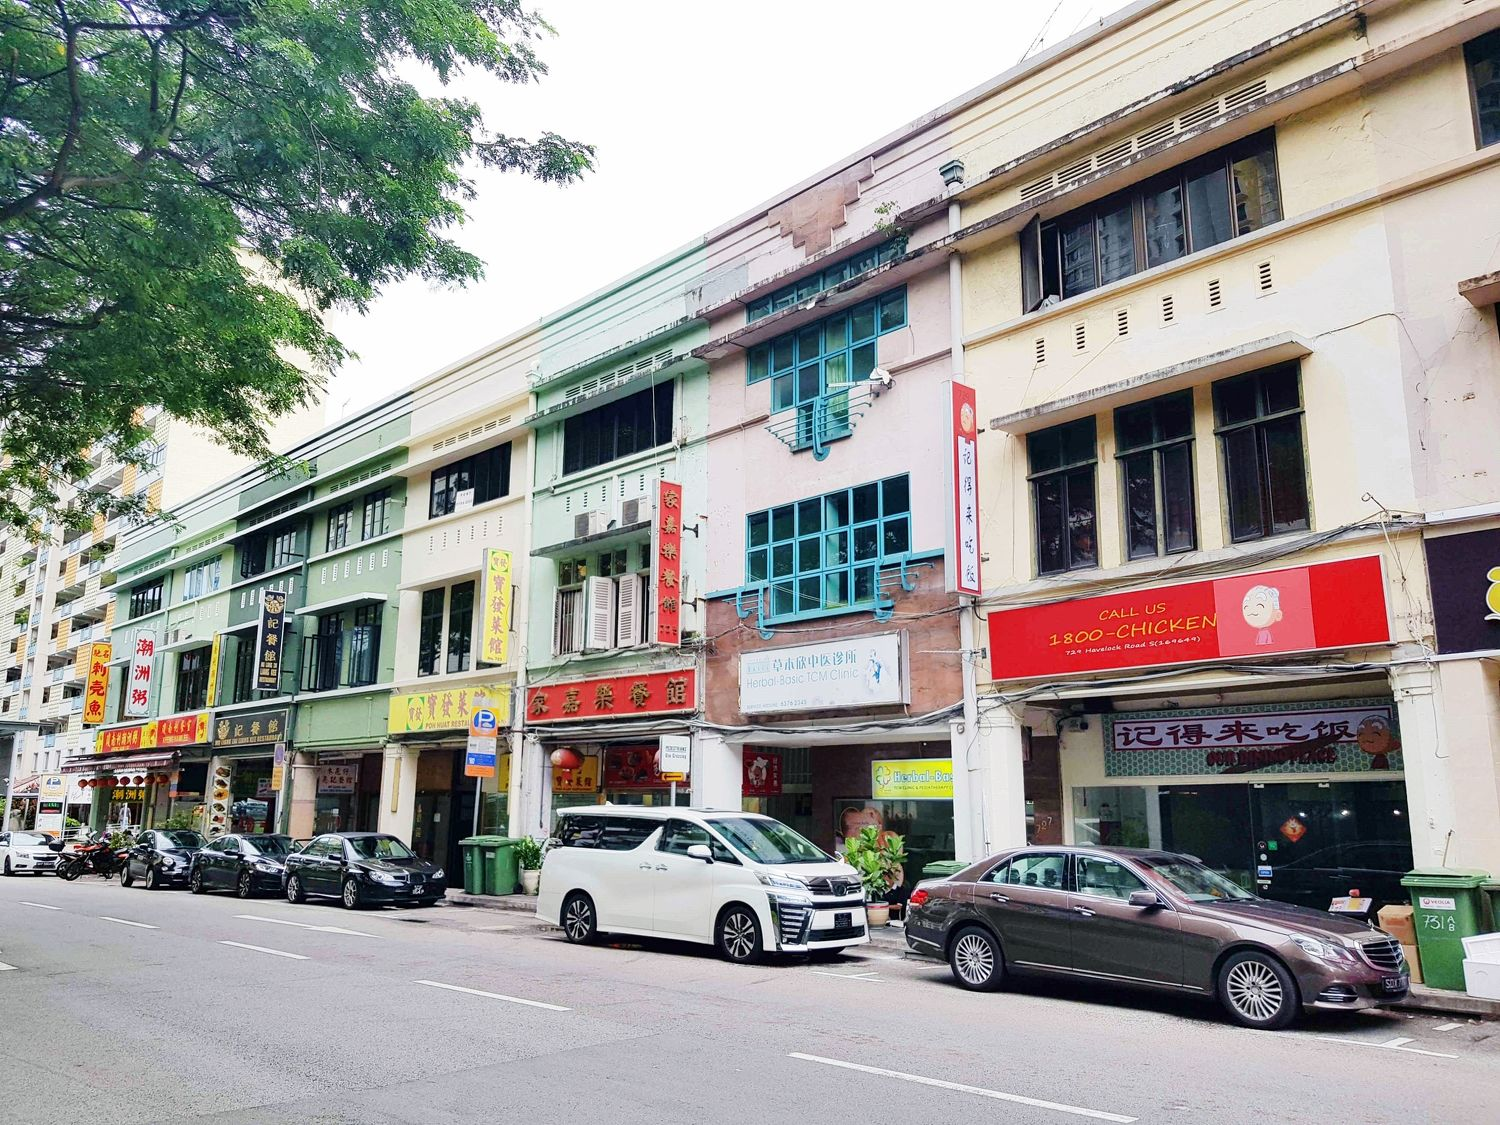 HAVELOCK ROAD shophouses - EDGEPROP SINGAPORE